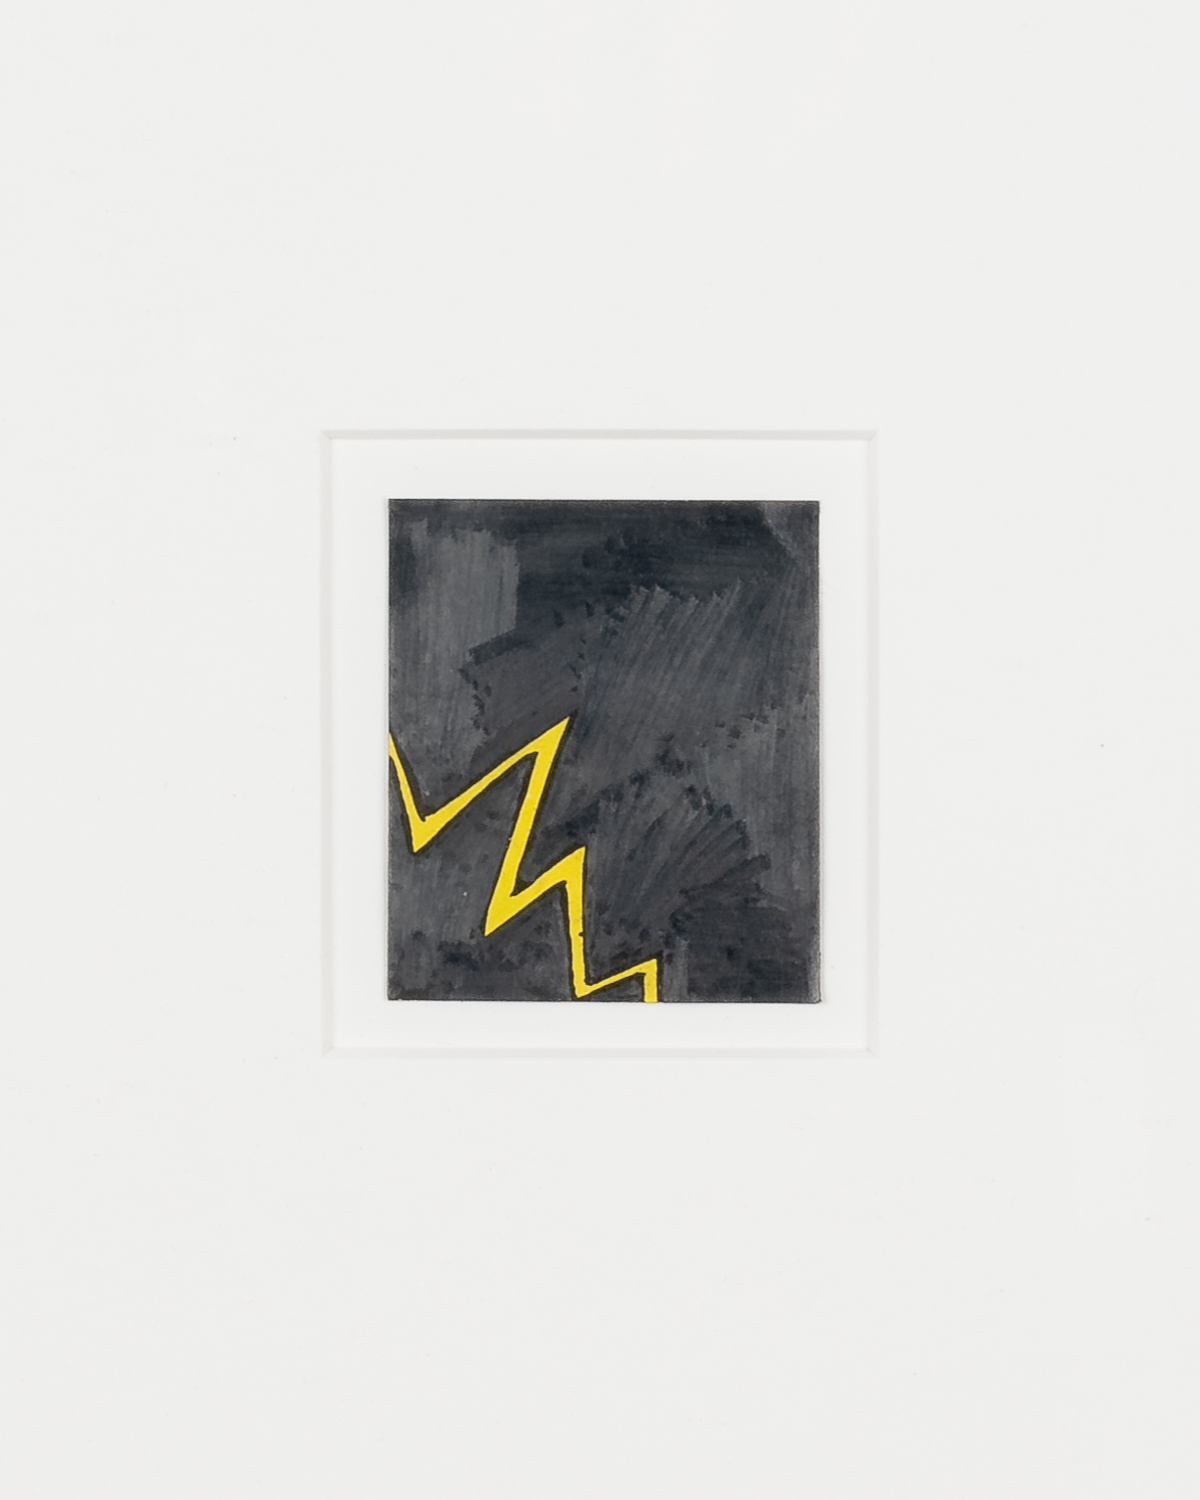 Tony Lewis  Untitled (Lightning Bolt) , (Detail) 2017 Pencil, graphite powder and correction fluid on comic book cutout 2 1/4h x 2w in TL486